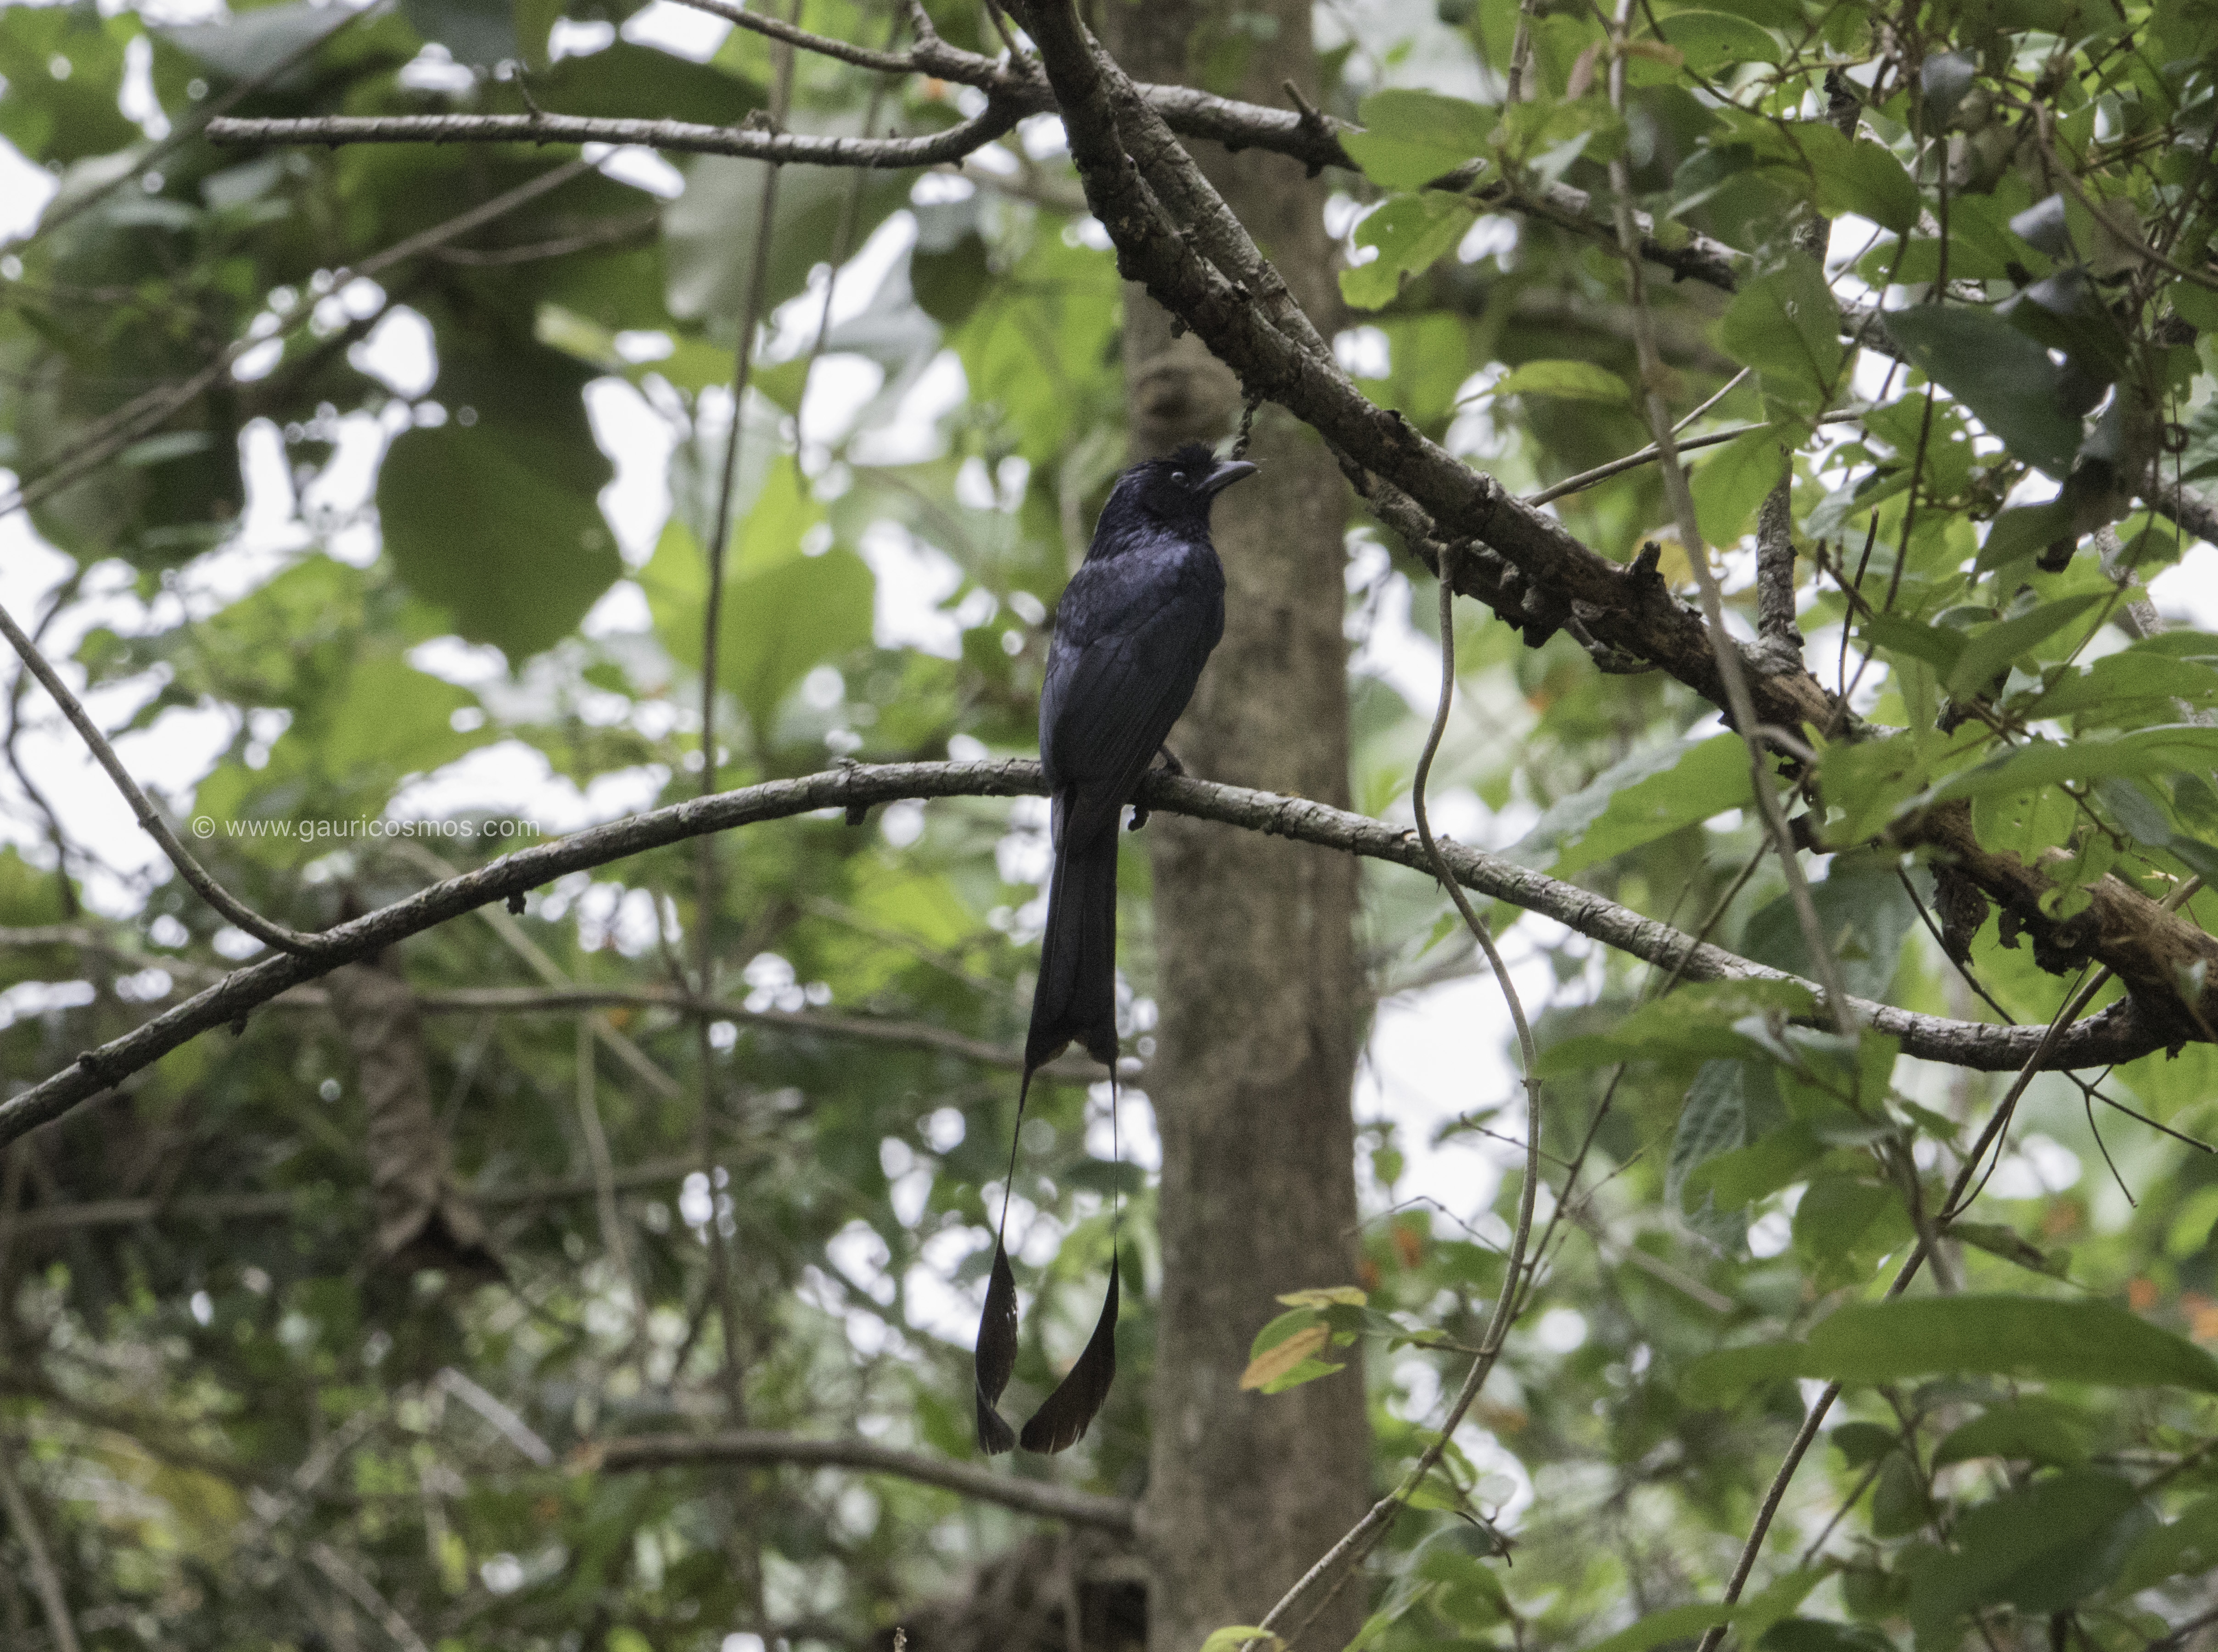 Greater racket tailed drongo